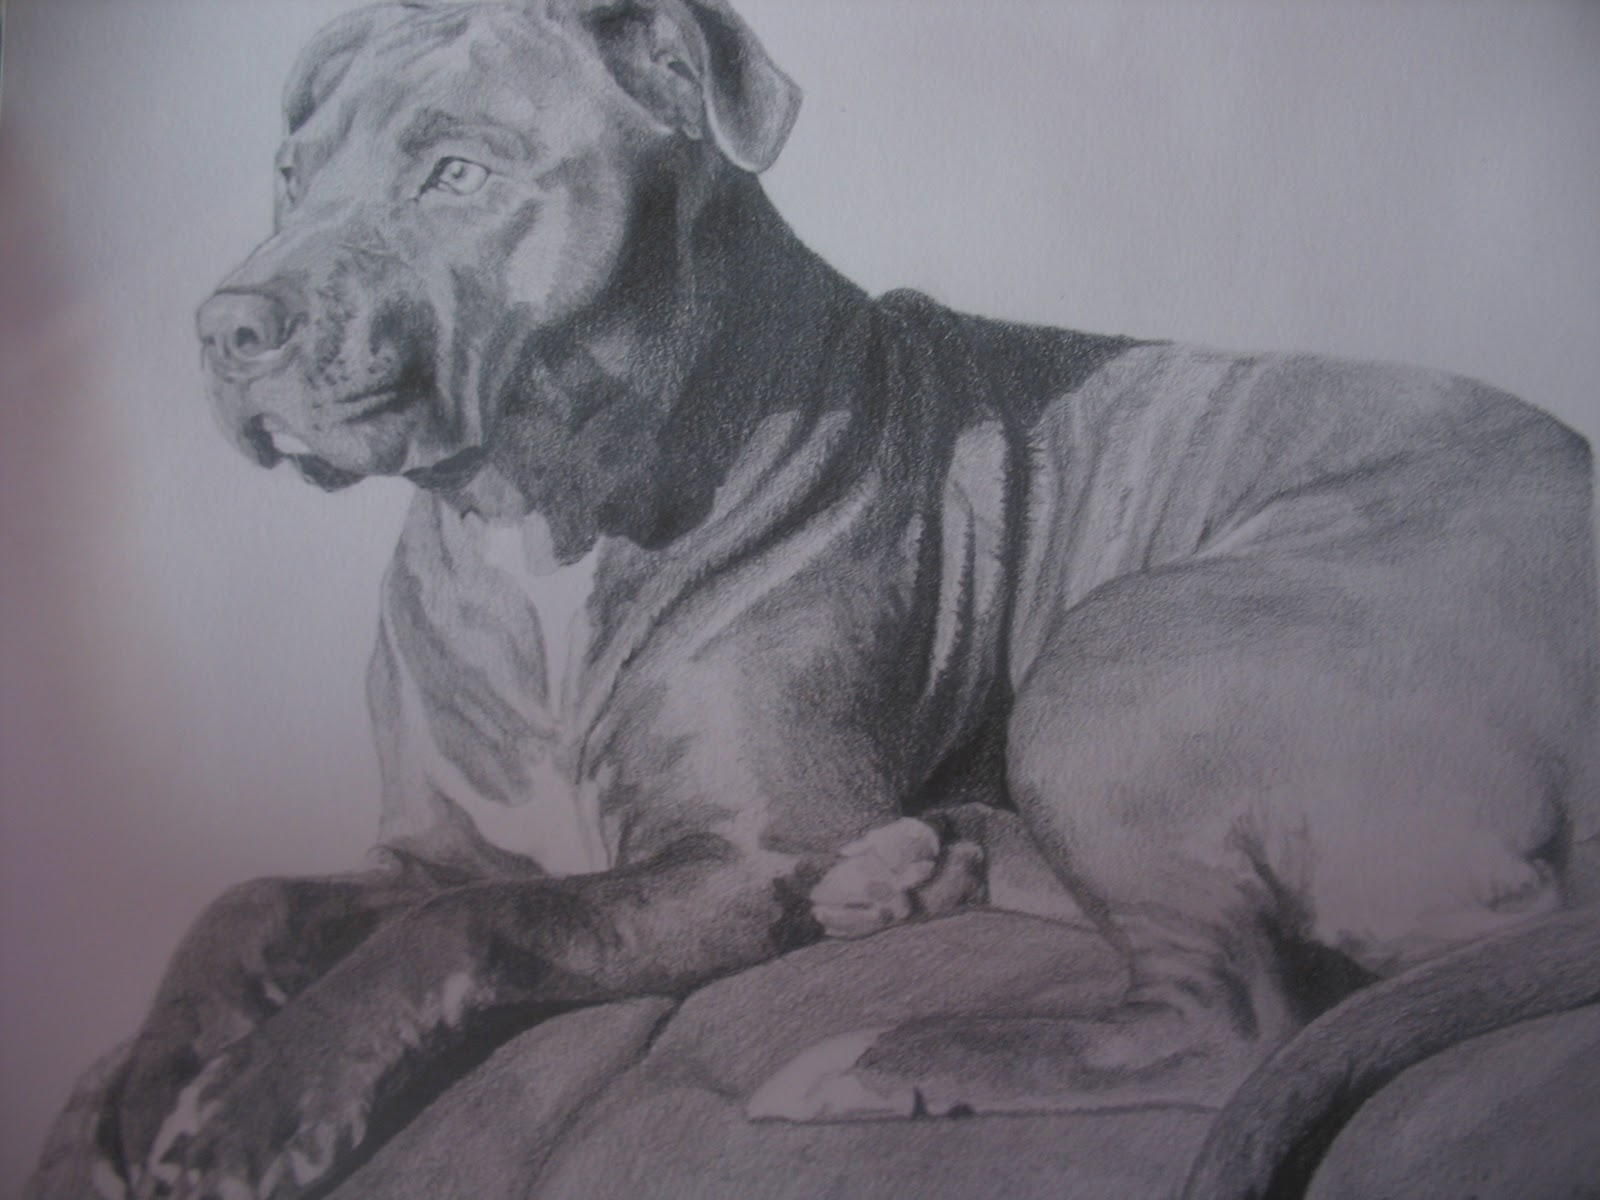 Pitbull dog drawings in pencil - photo#14